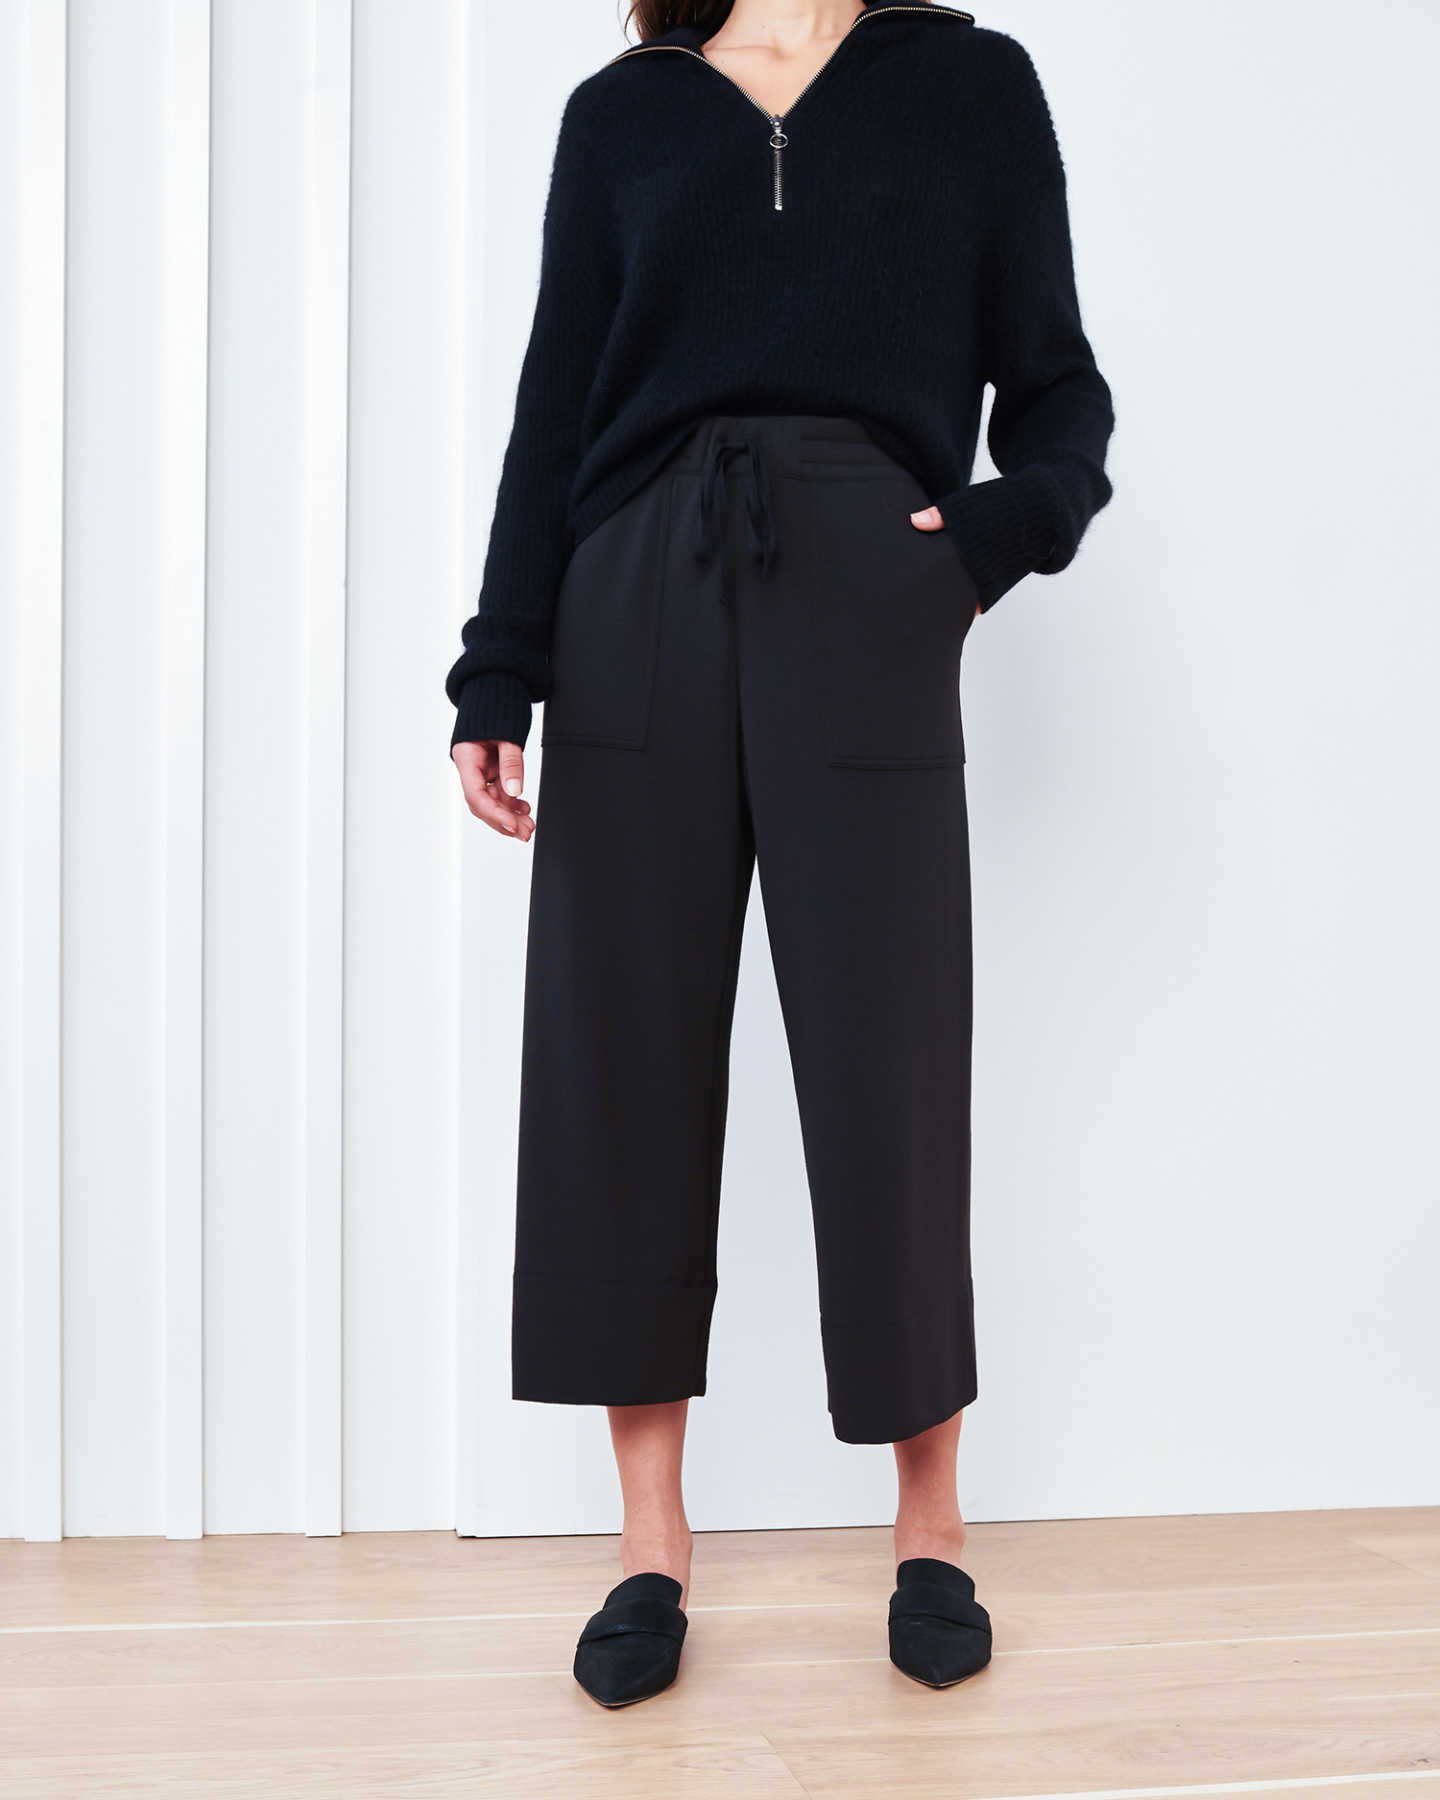 SuperSoft Fleece Wide Leg Pants - Black - 0